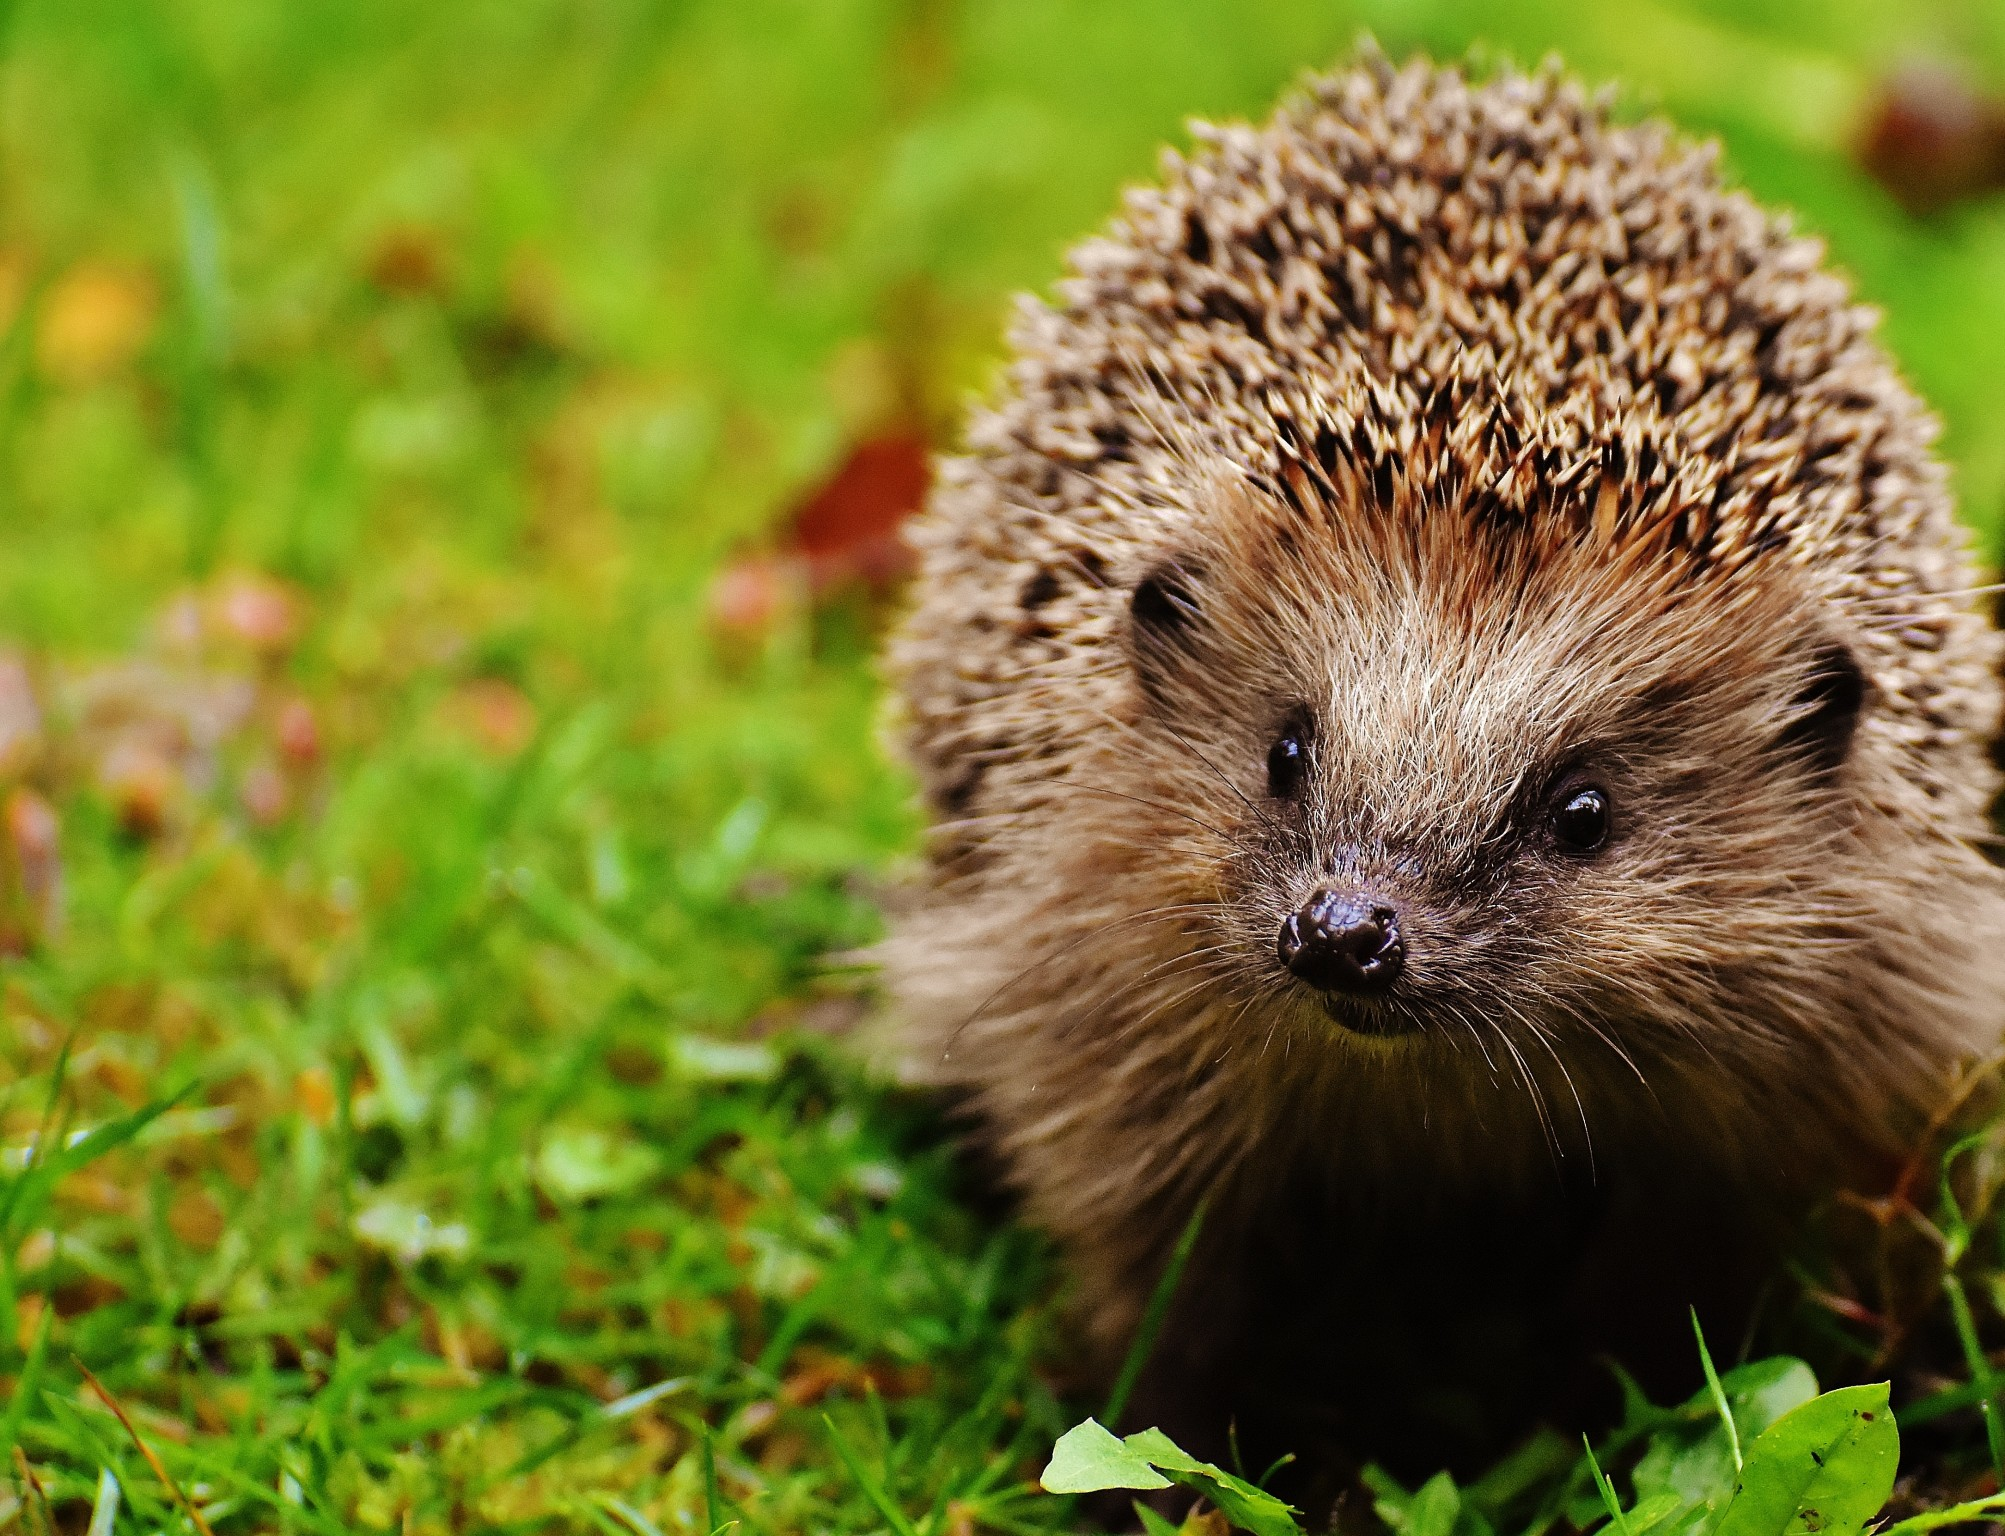 Hedgehog - (c) Publicdomainphotos | Dreamstime.com